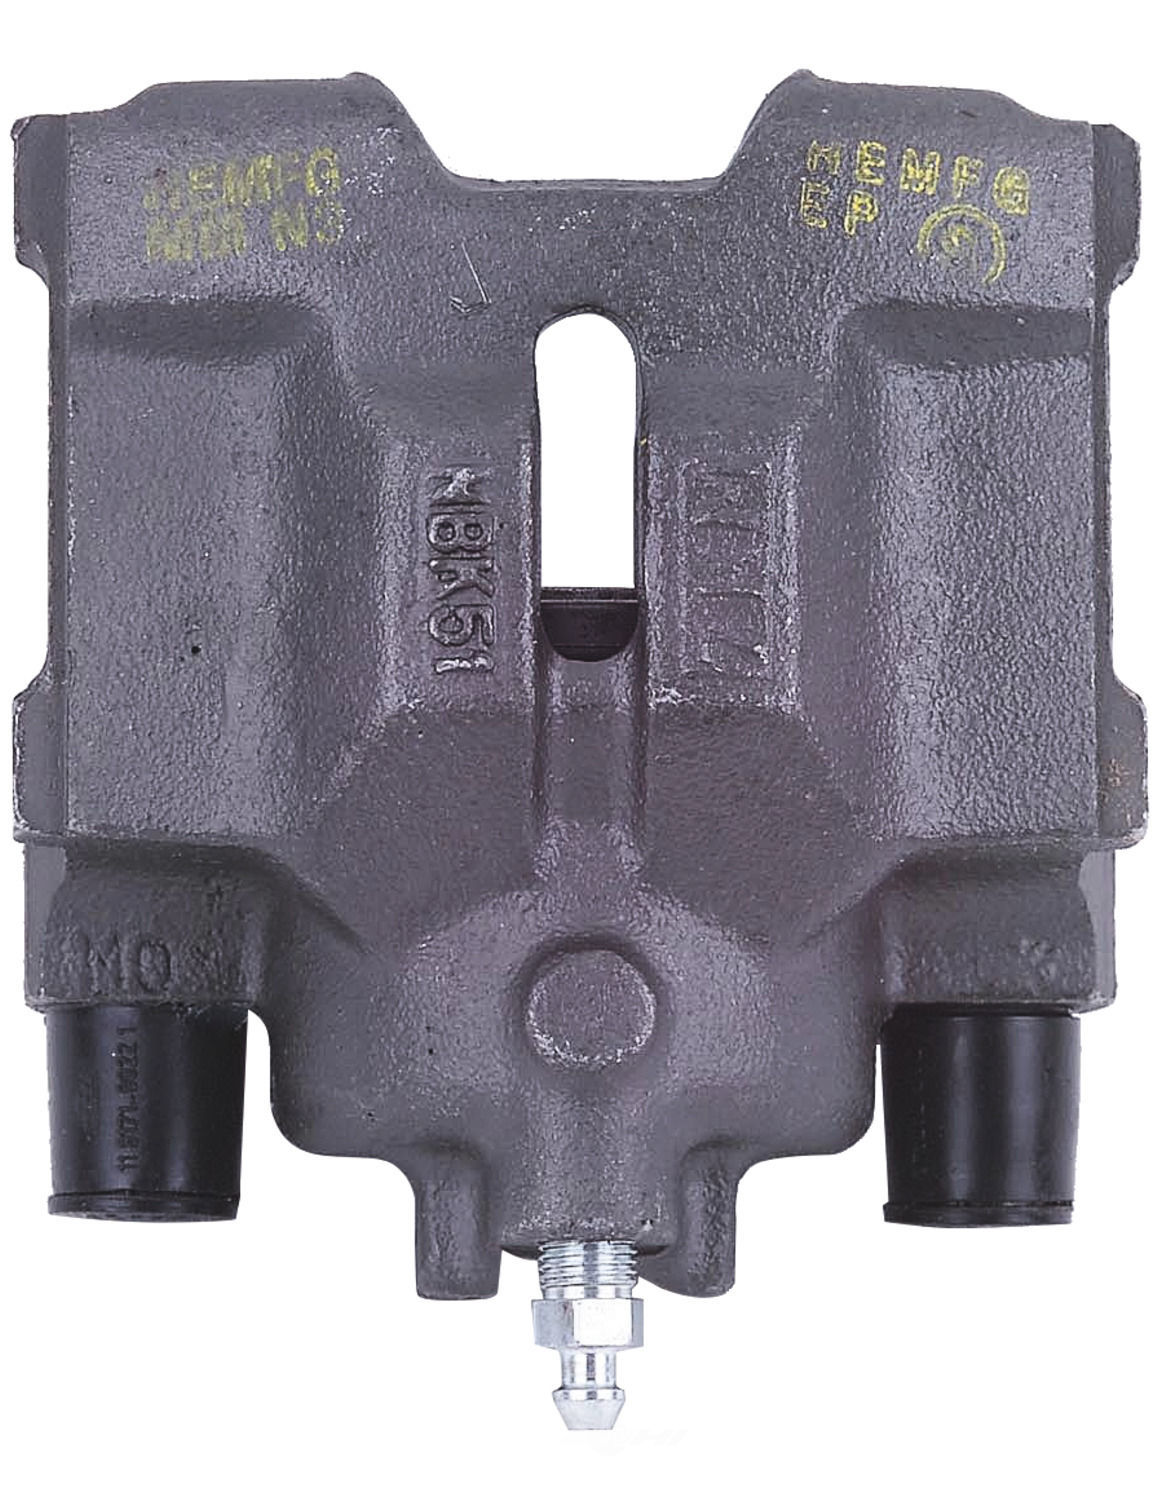 CARDONE/A-1 CARDONE - Reman Friction Choice Caliper (Front Right) - A1C 19-1042